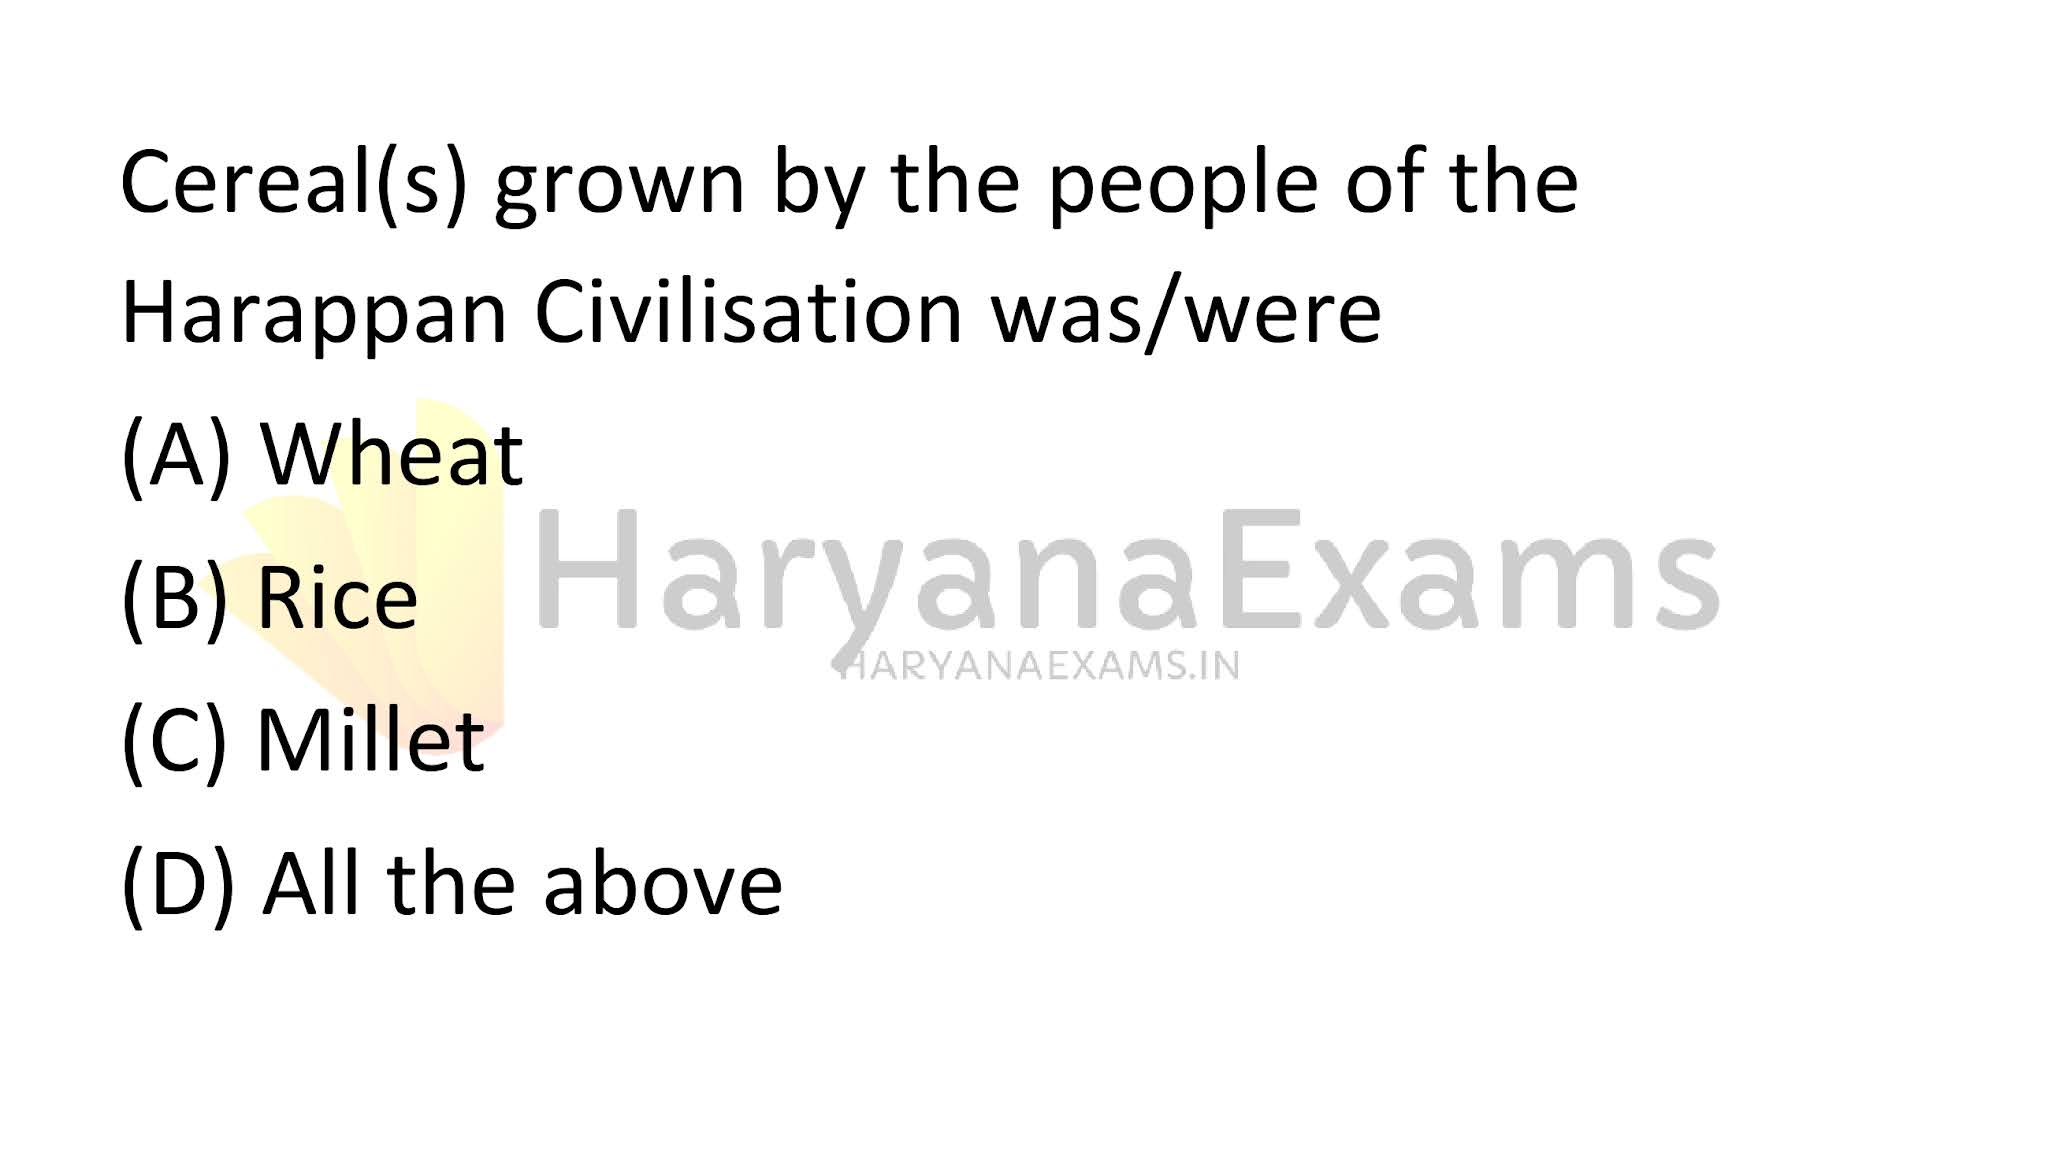 Cereal(s) grown by the people of the Harappan Civilisation was/were